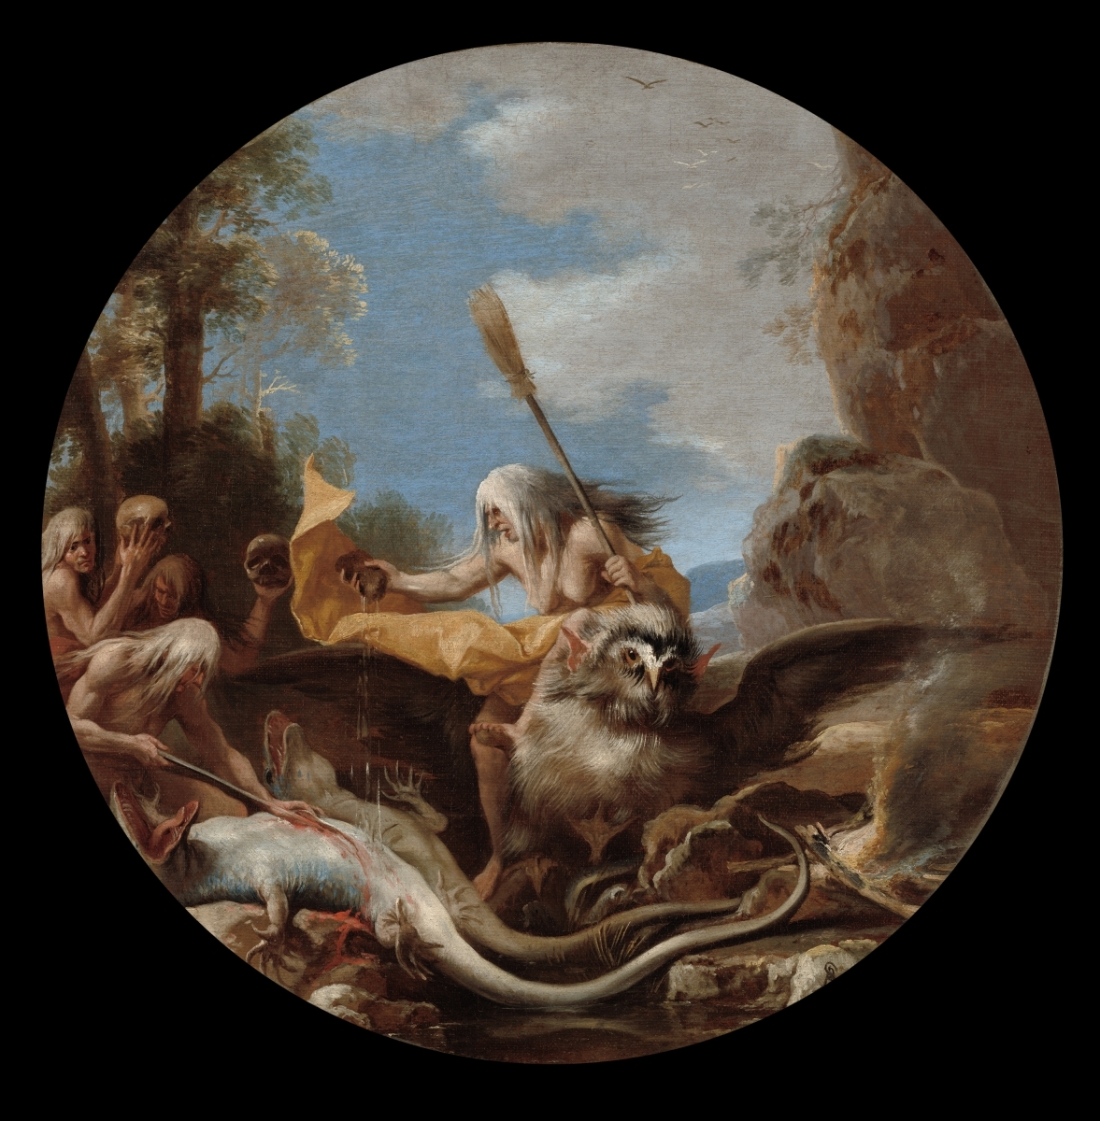 Salvator Rosa, Scene with Witches: Day, 1645-59. Collection of the Cleveland Museum of Art.